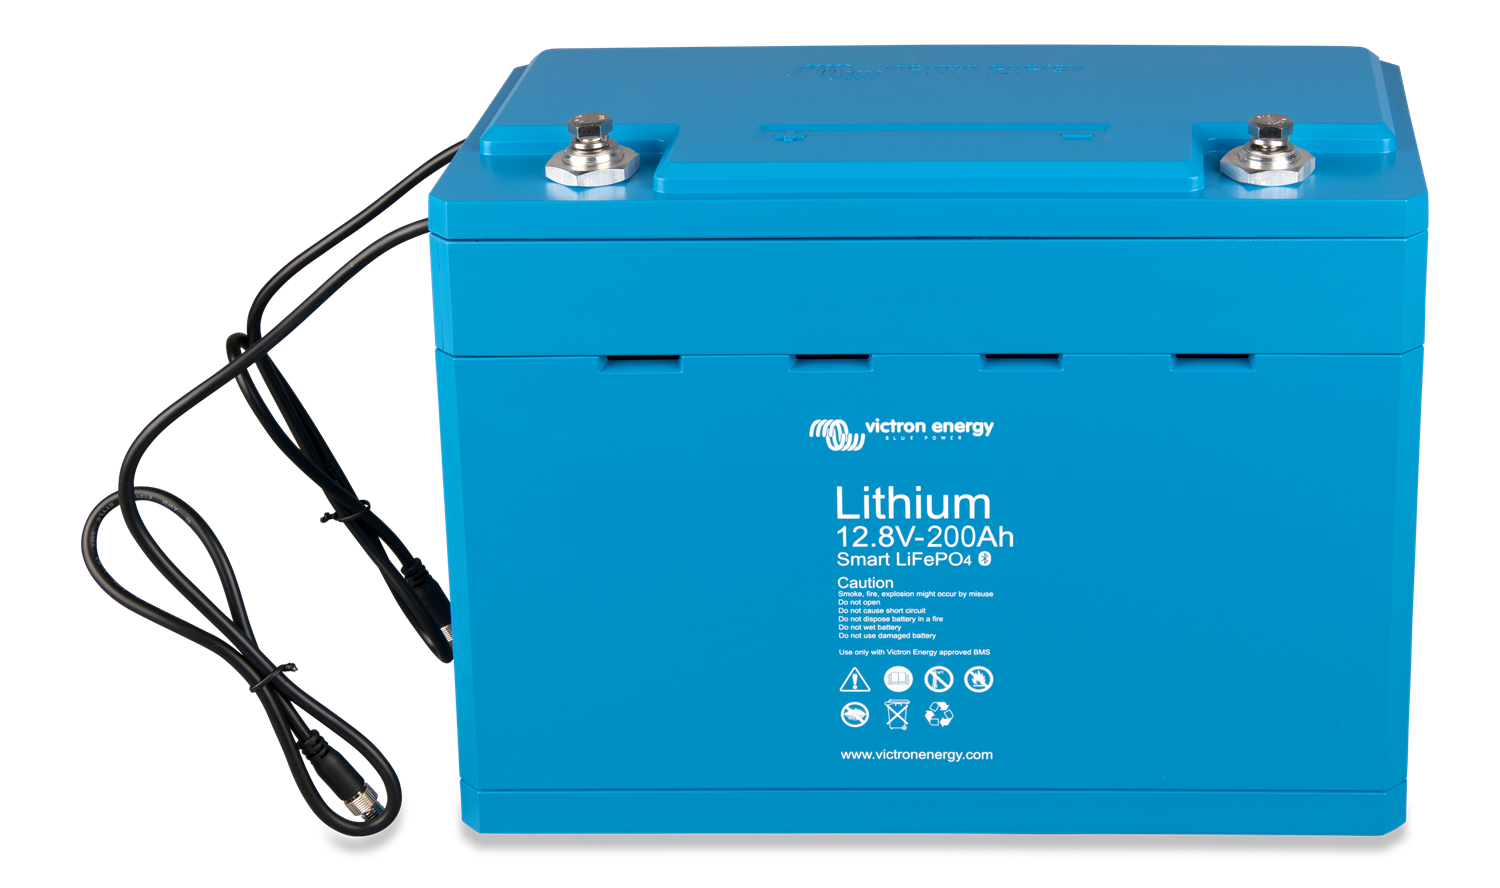 Victron Energy LiFePO4 12V (12.8v) 200ah Smart Battery